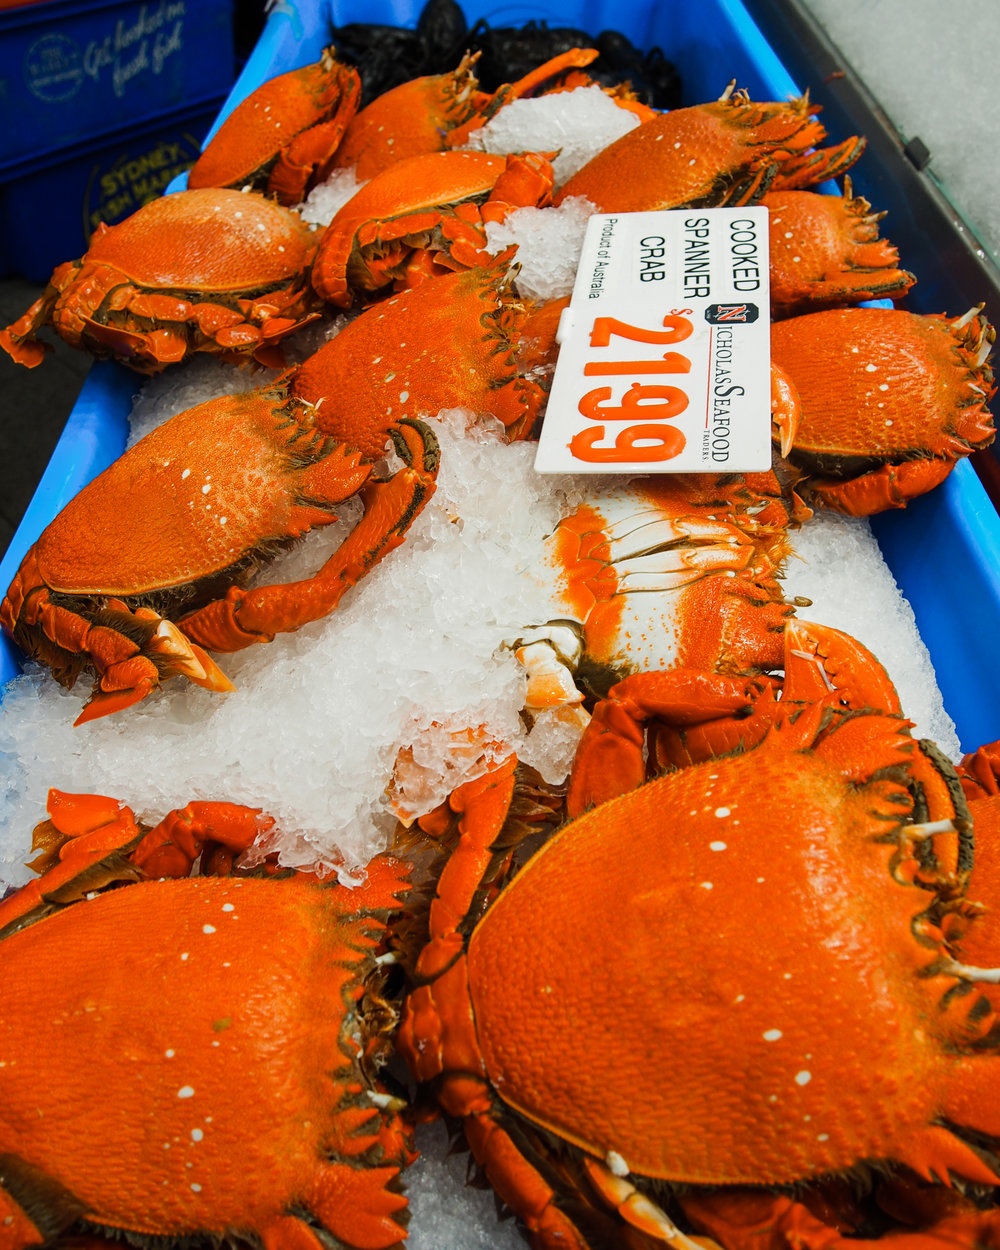 Spanner crab at the Sydney Fish Market